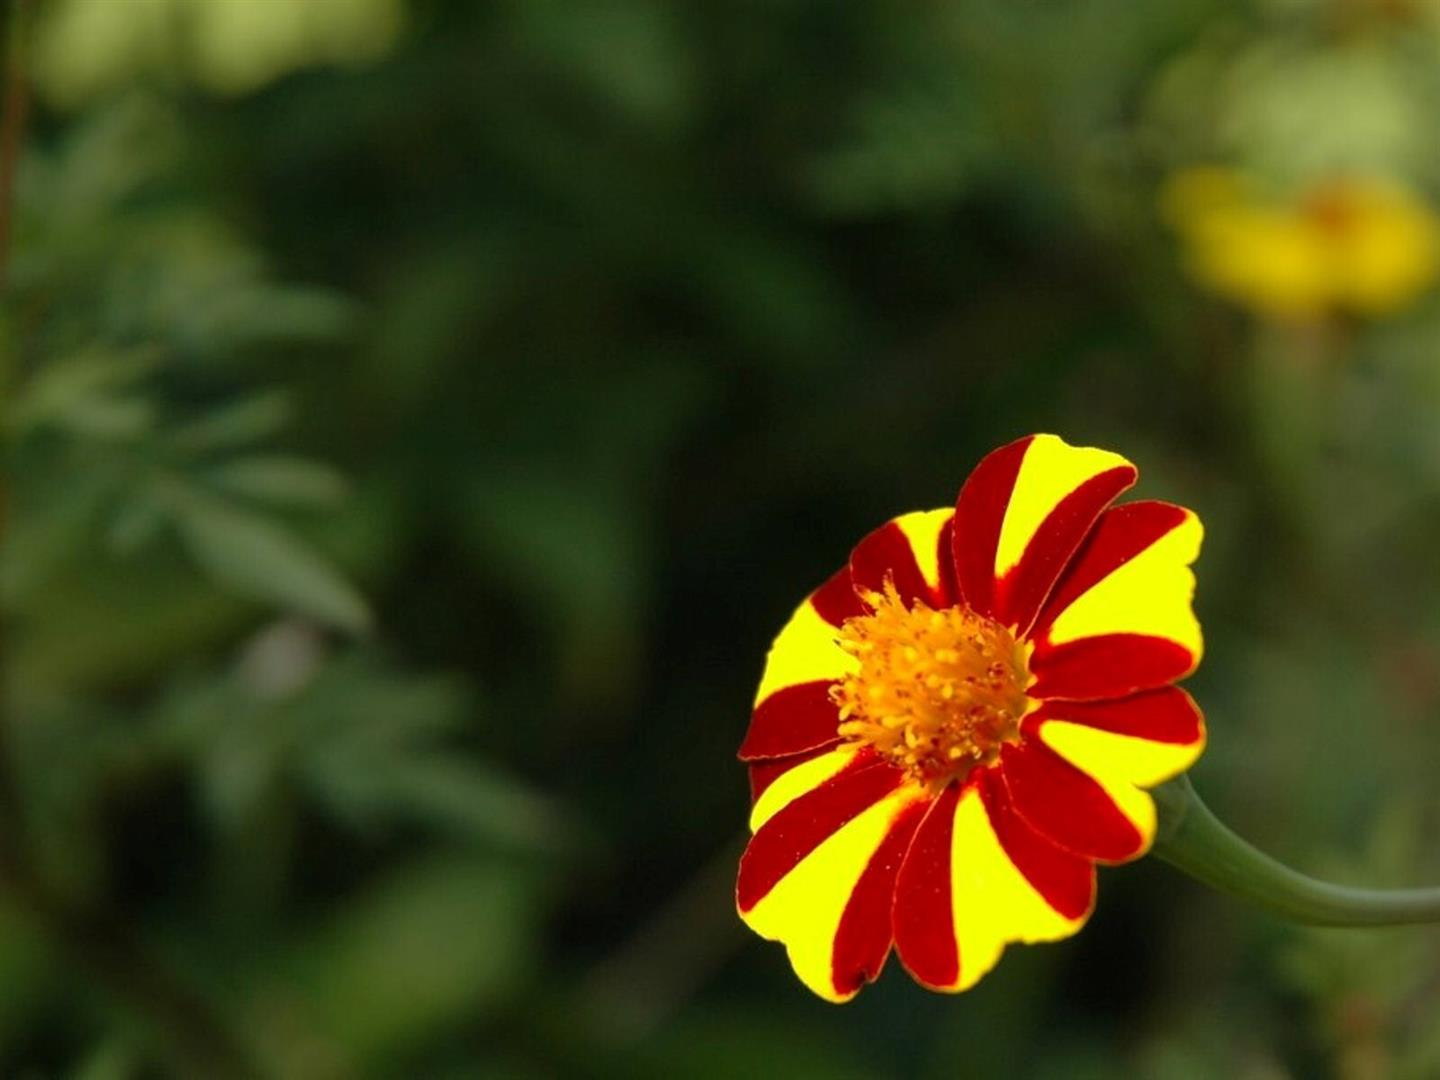 1440x1080 Red and Yellow Flower Photo